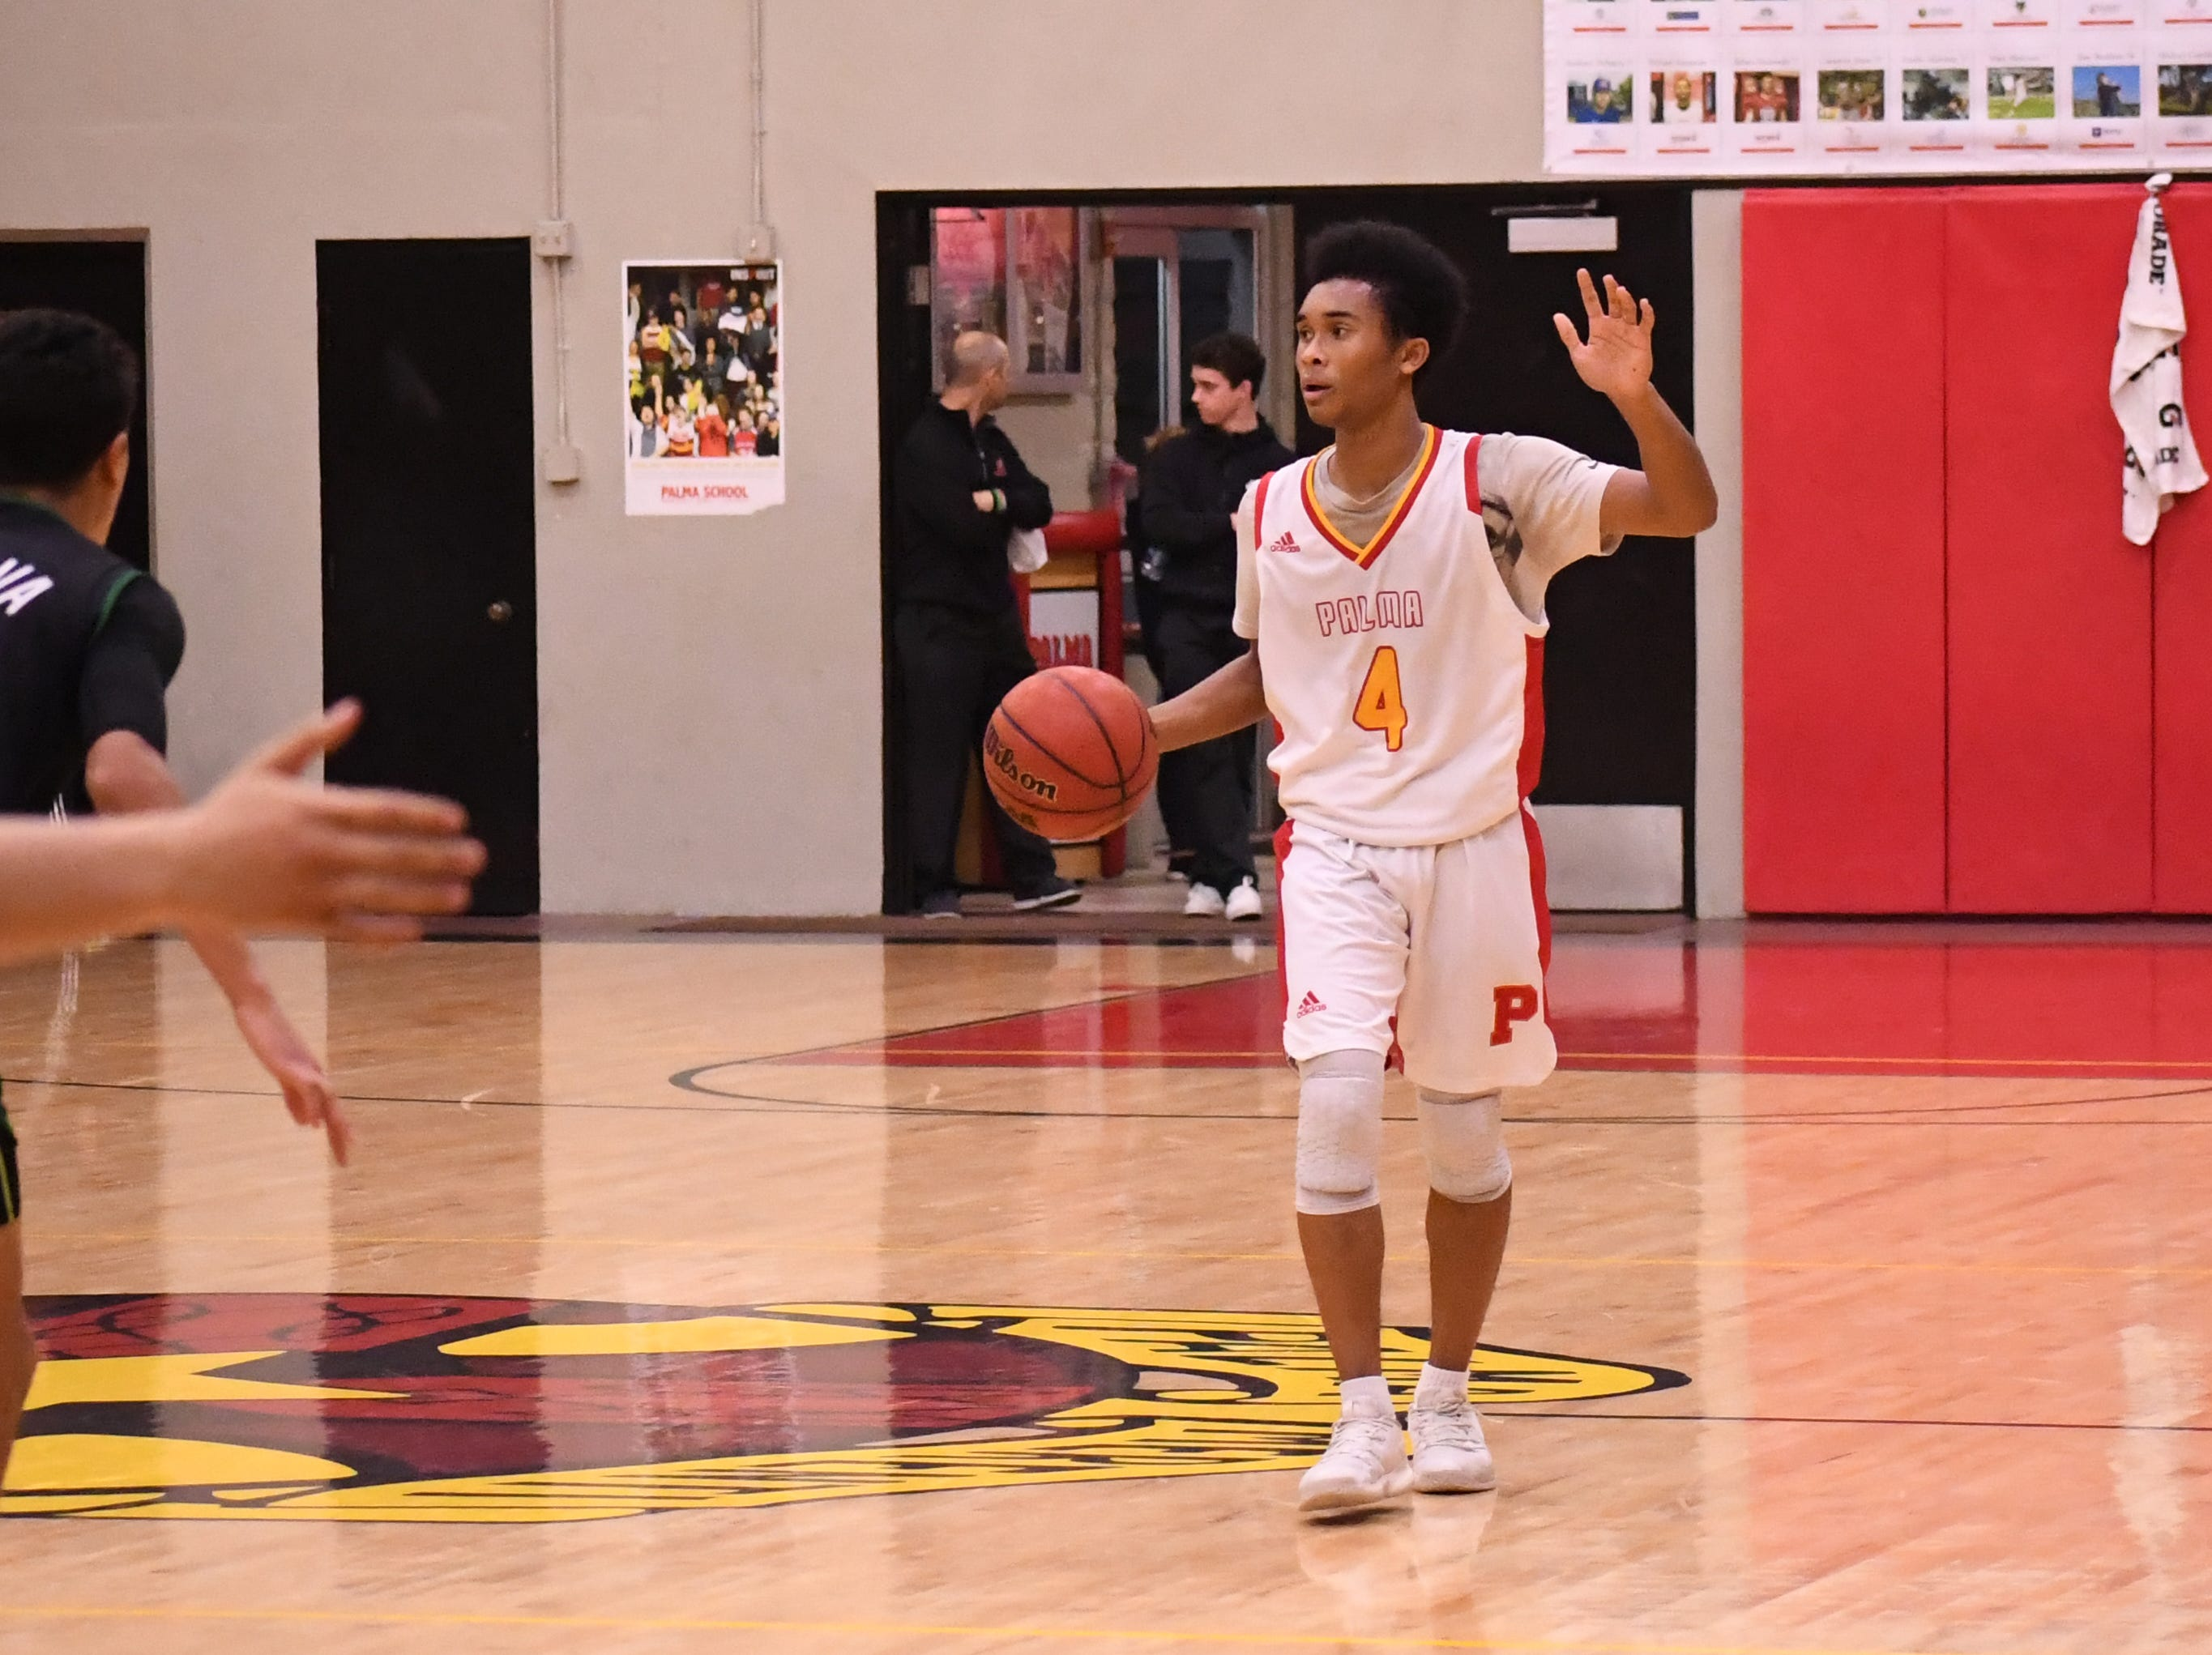 Palma guard Donte Jean Pierre (4) calls a play on offense.